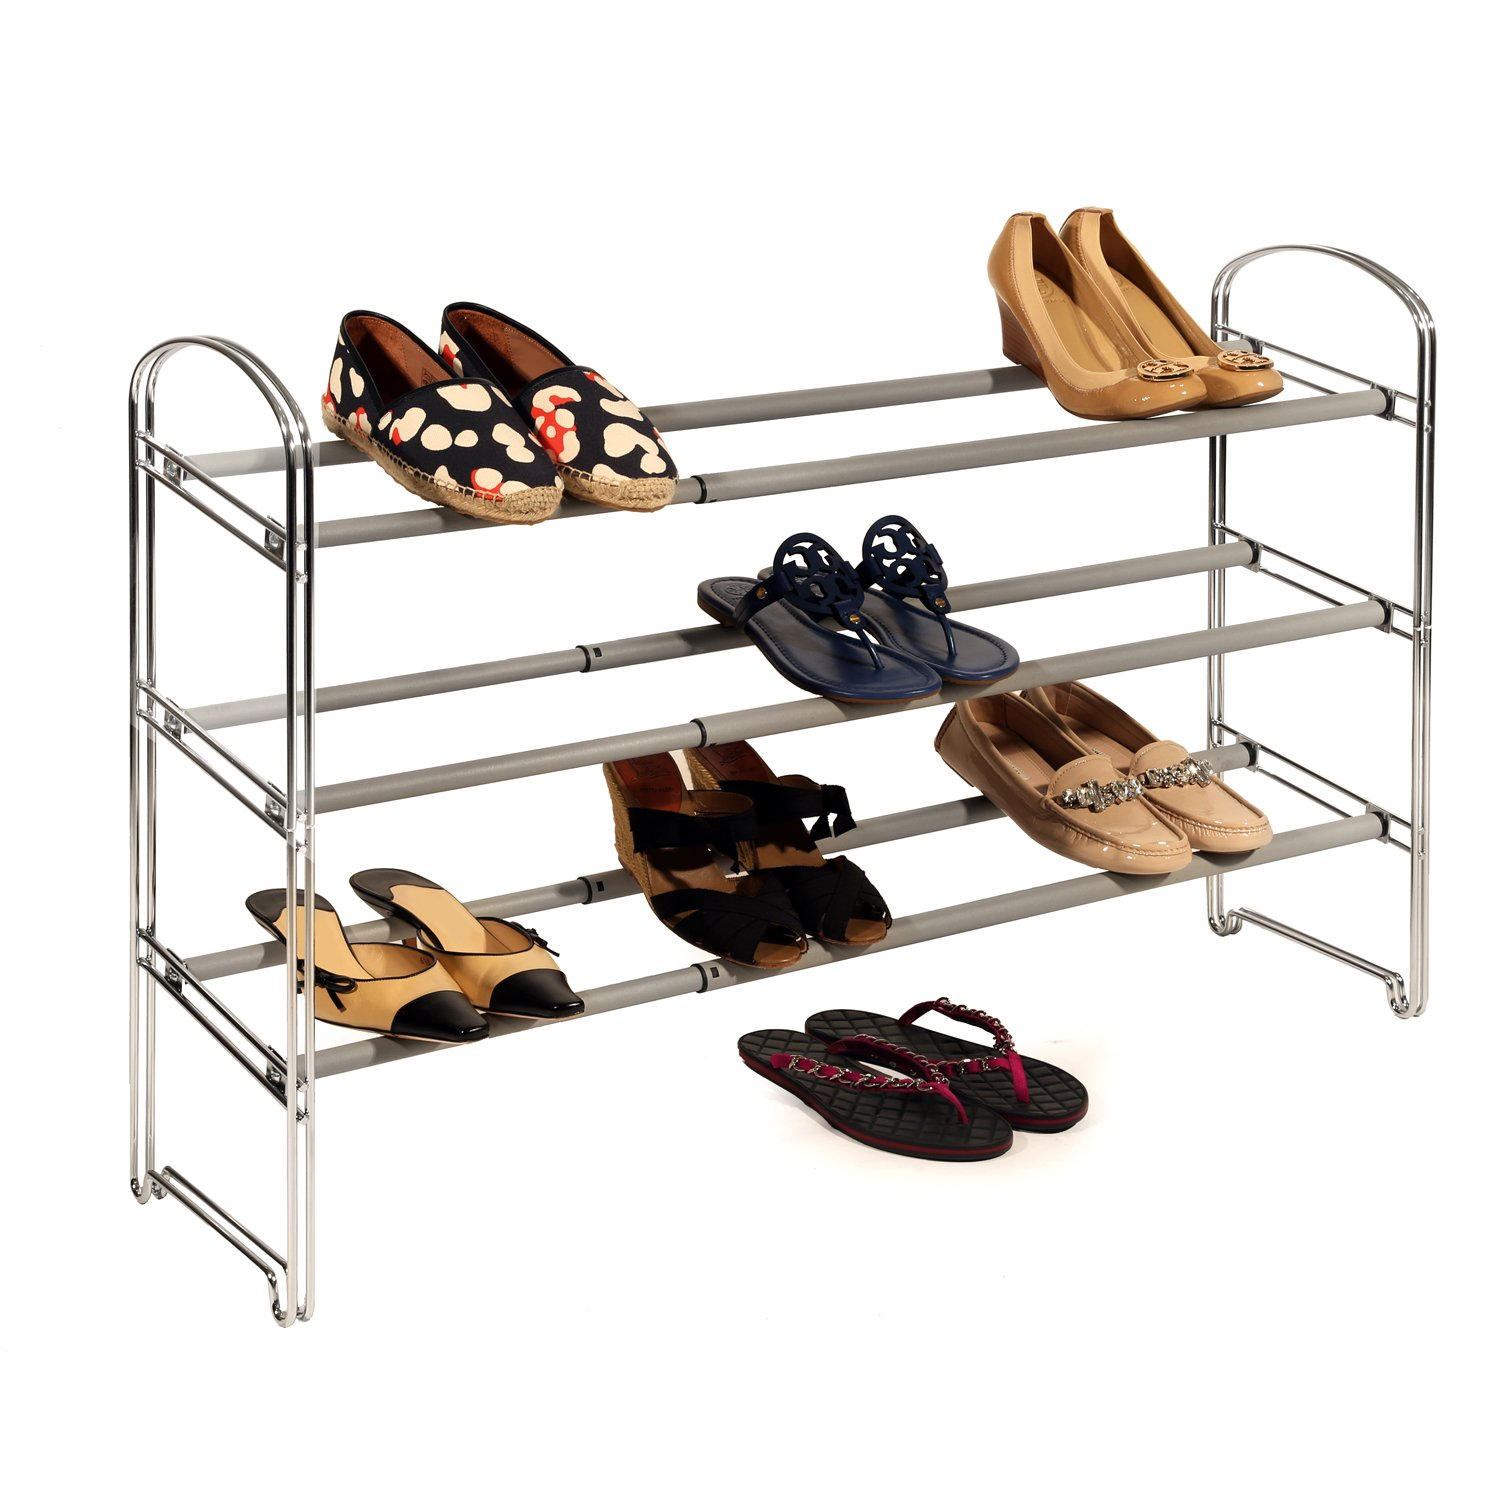 3-Tier Expandable Shoe Rack, Chrome, Store up to 21 pairs of shoes per unit By Seville Classics